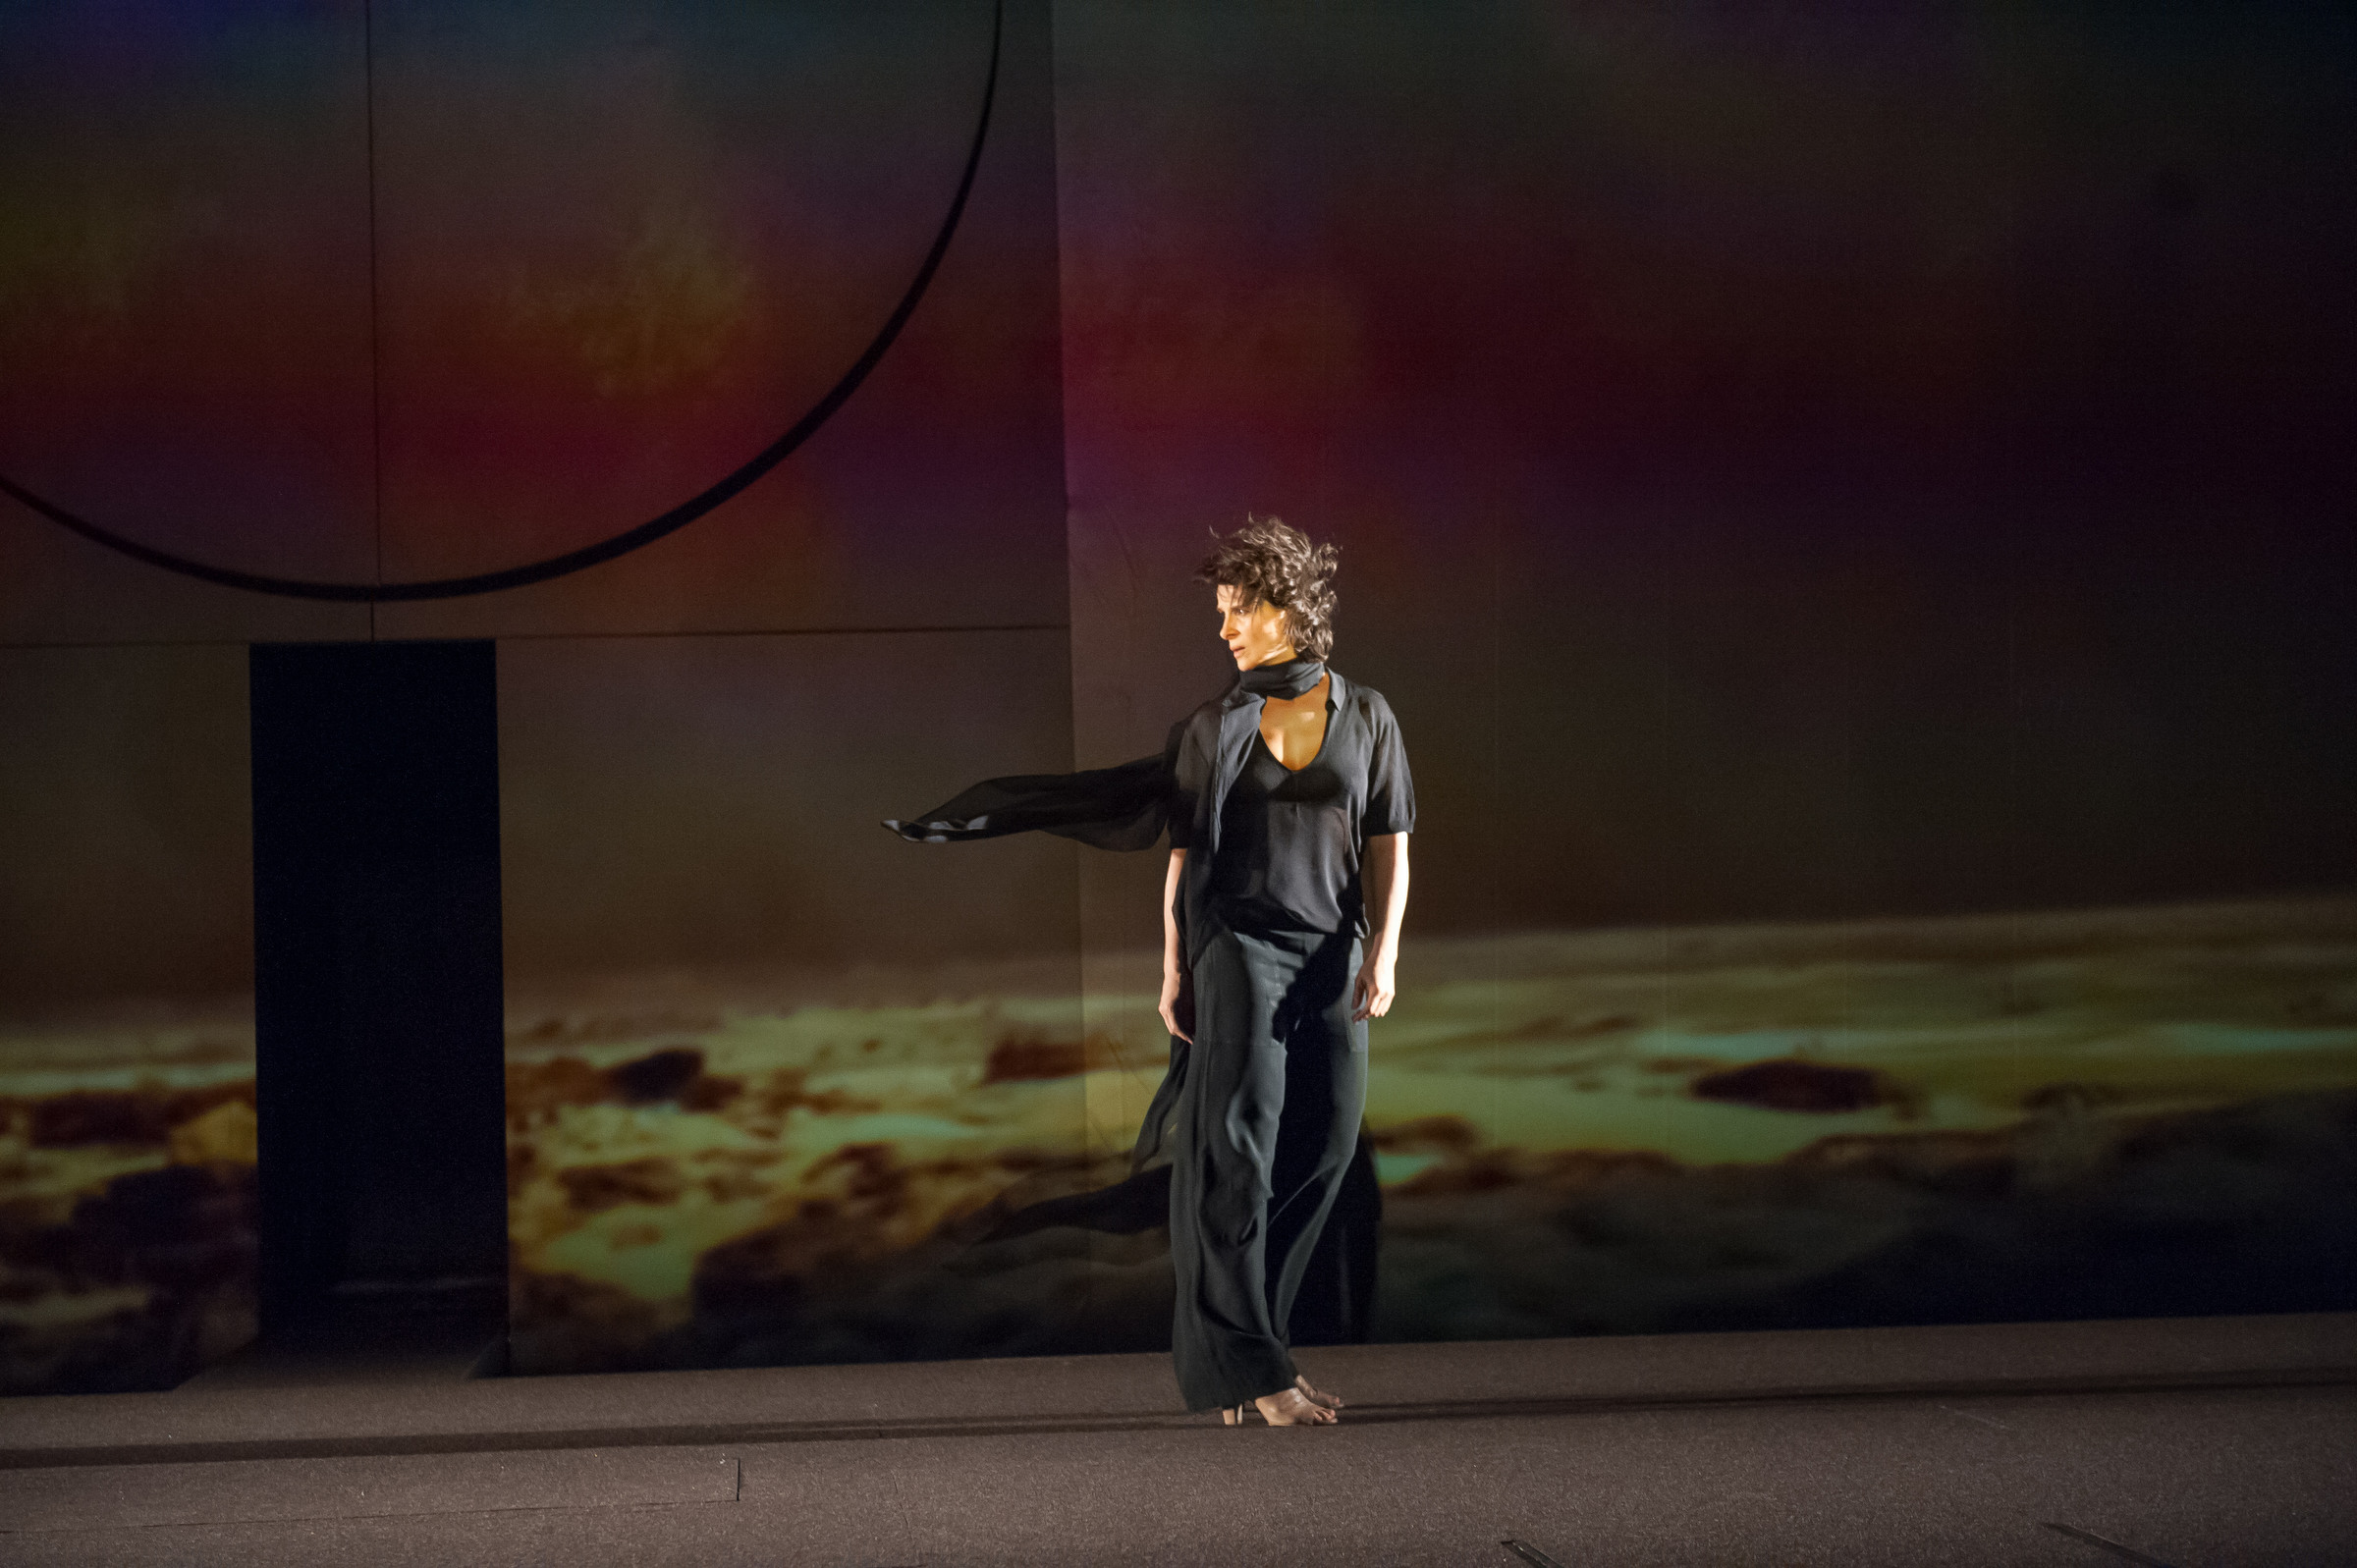 an evaluation of antigones character and meaning in the play antigone 11/28/2011 9780199754489 9780199918843 1/1/2012 11/21/2011 9780199732562 9780199918515 9/1/2011 6/2/2011 9780199541379 9780191728532 9/1/2011 7/29/2011.